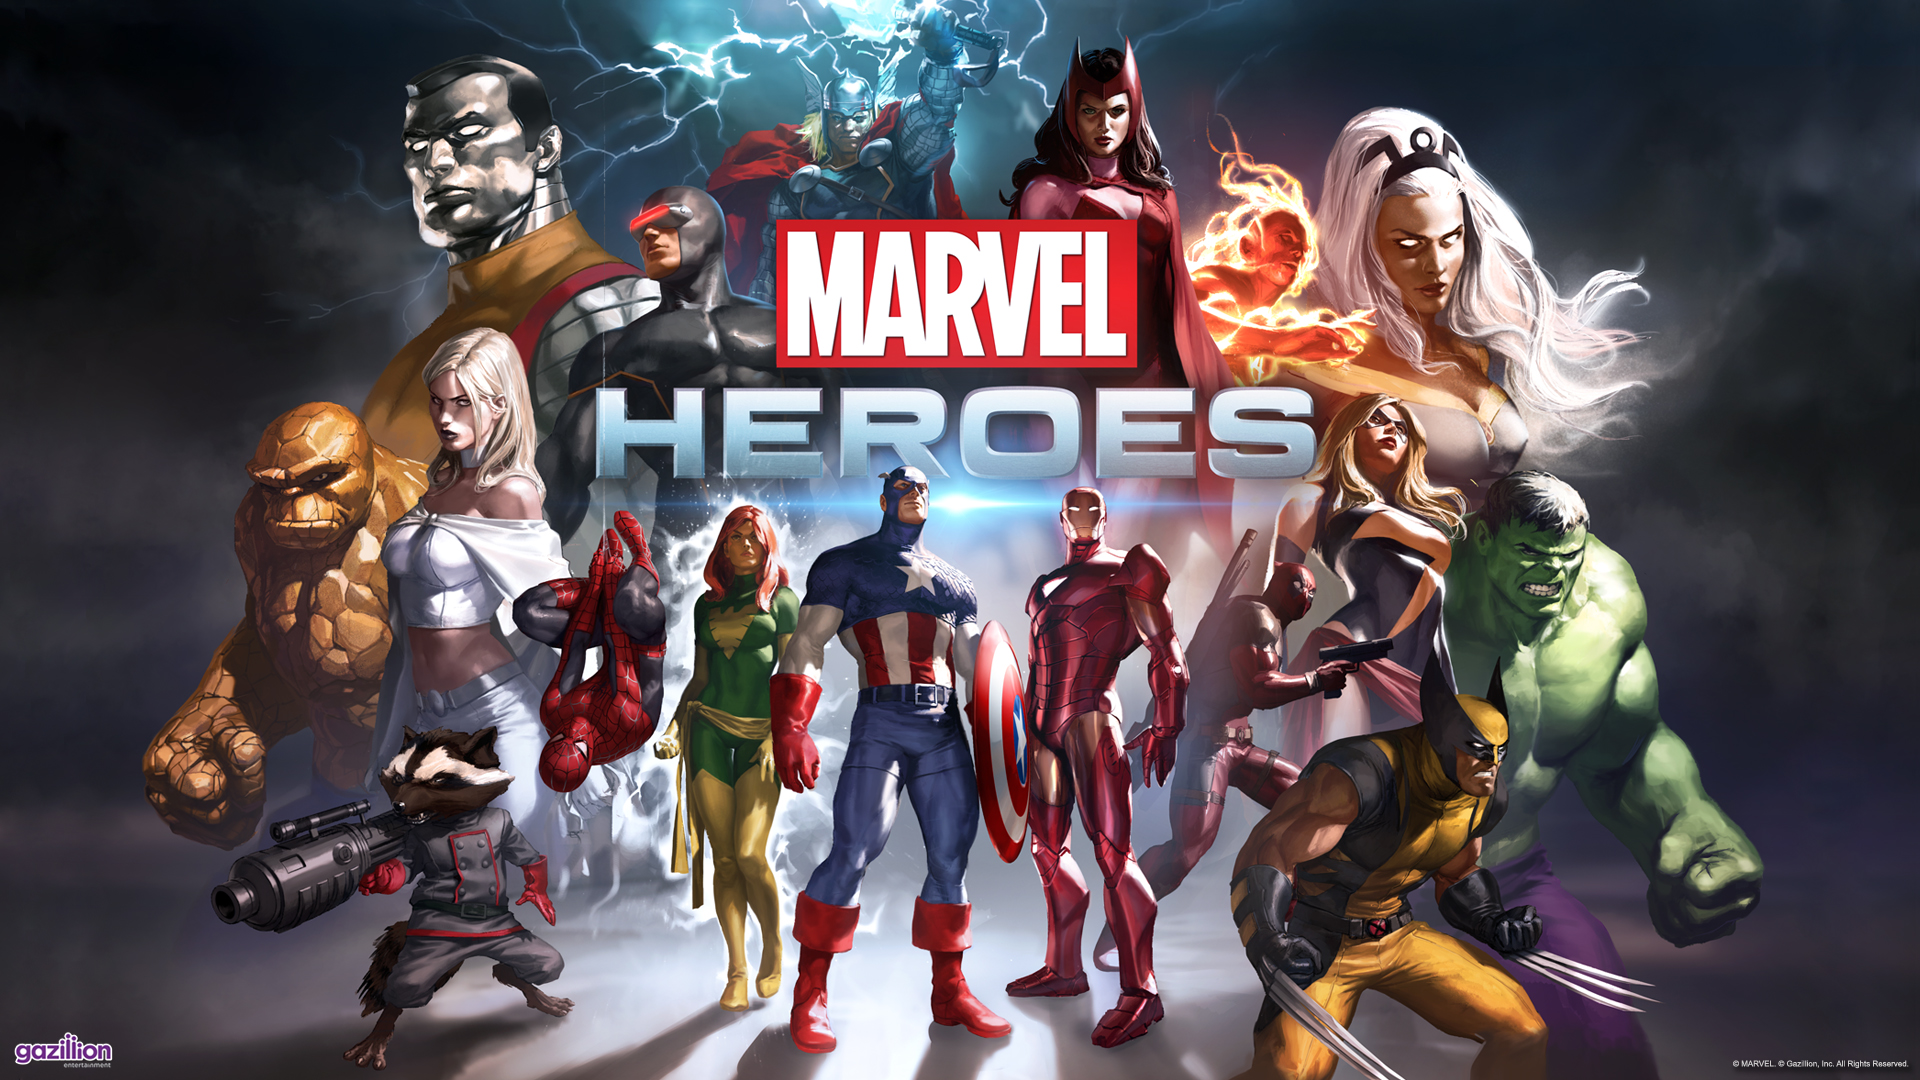 Epic Marvel Heroes Wallpapers   SlotsMarvel 1920x1080